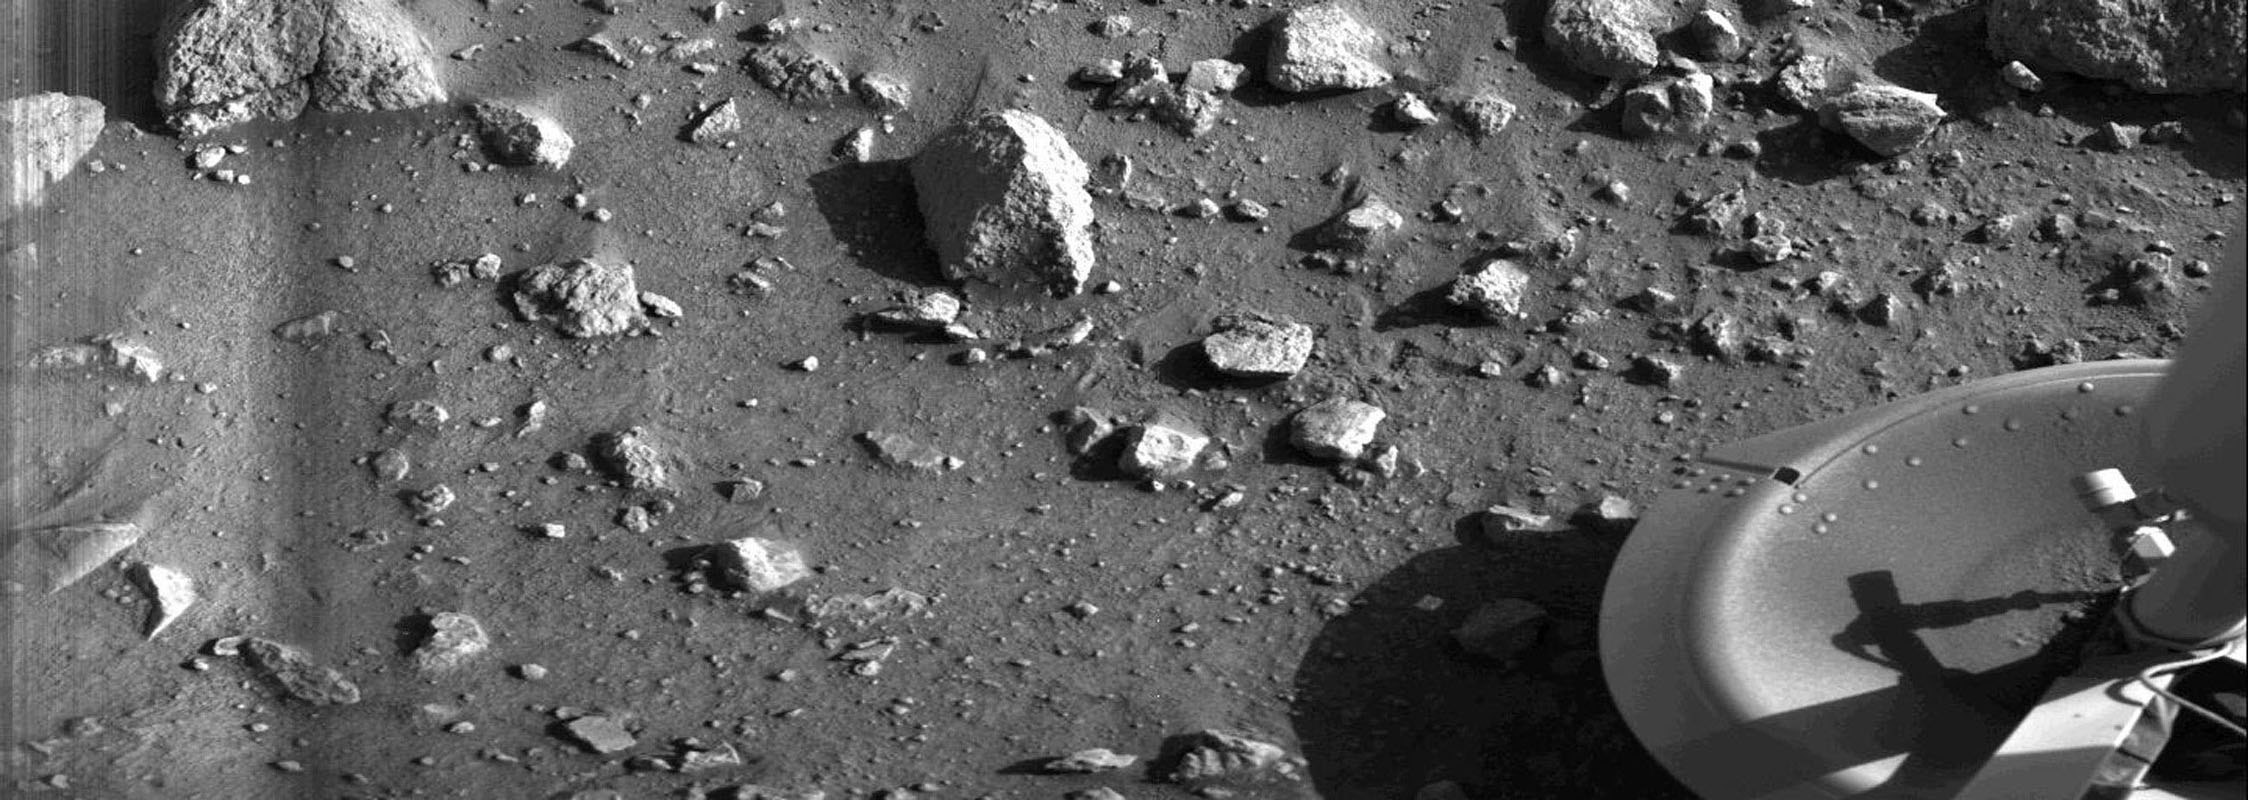 first photo on another planet image